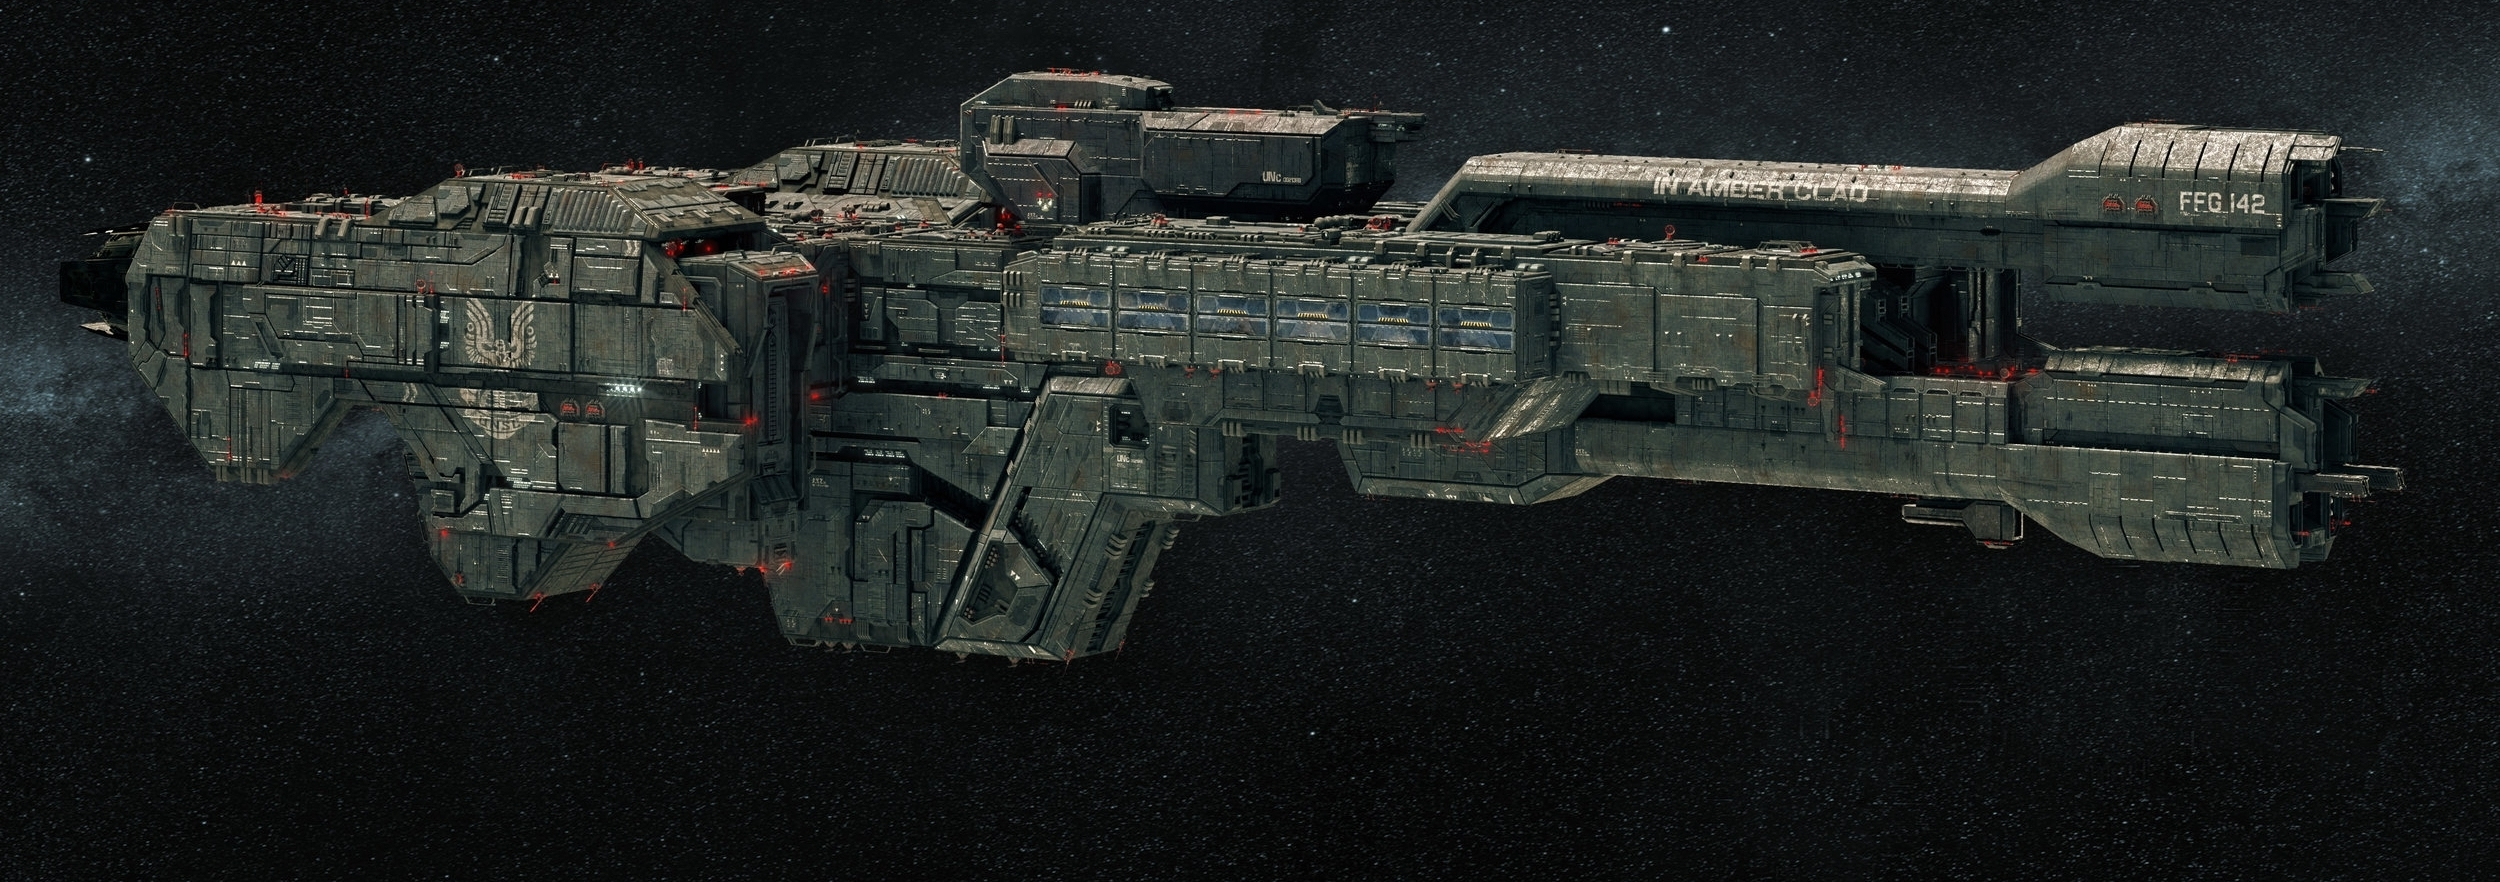 IN AMBER CLAD - TYPE: Stalwart-class light frigateCOMMISSION DATE: February 9th, 2547DESTRUCTION DATE: November 3rd, 2552